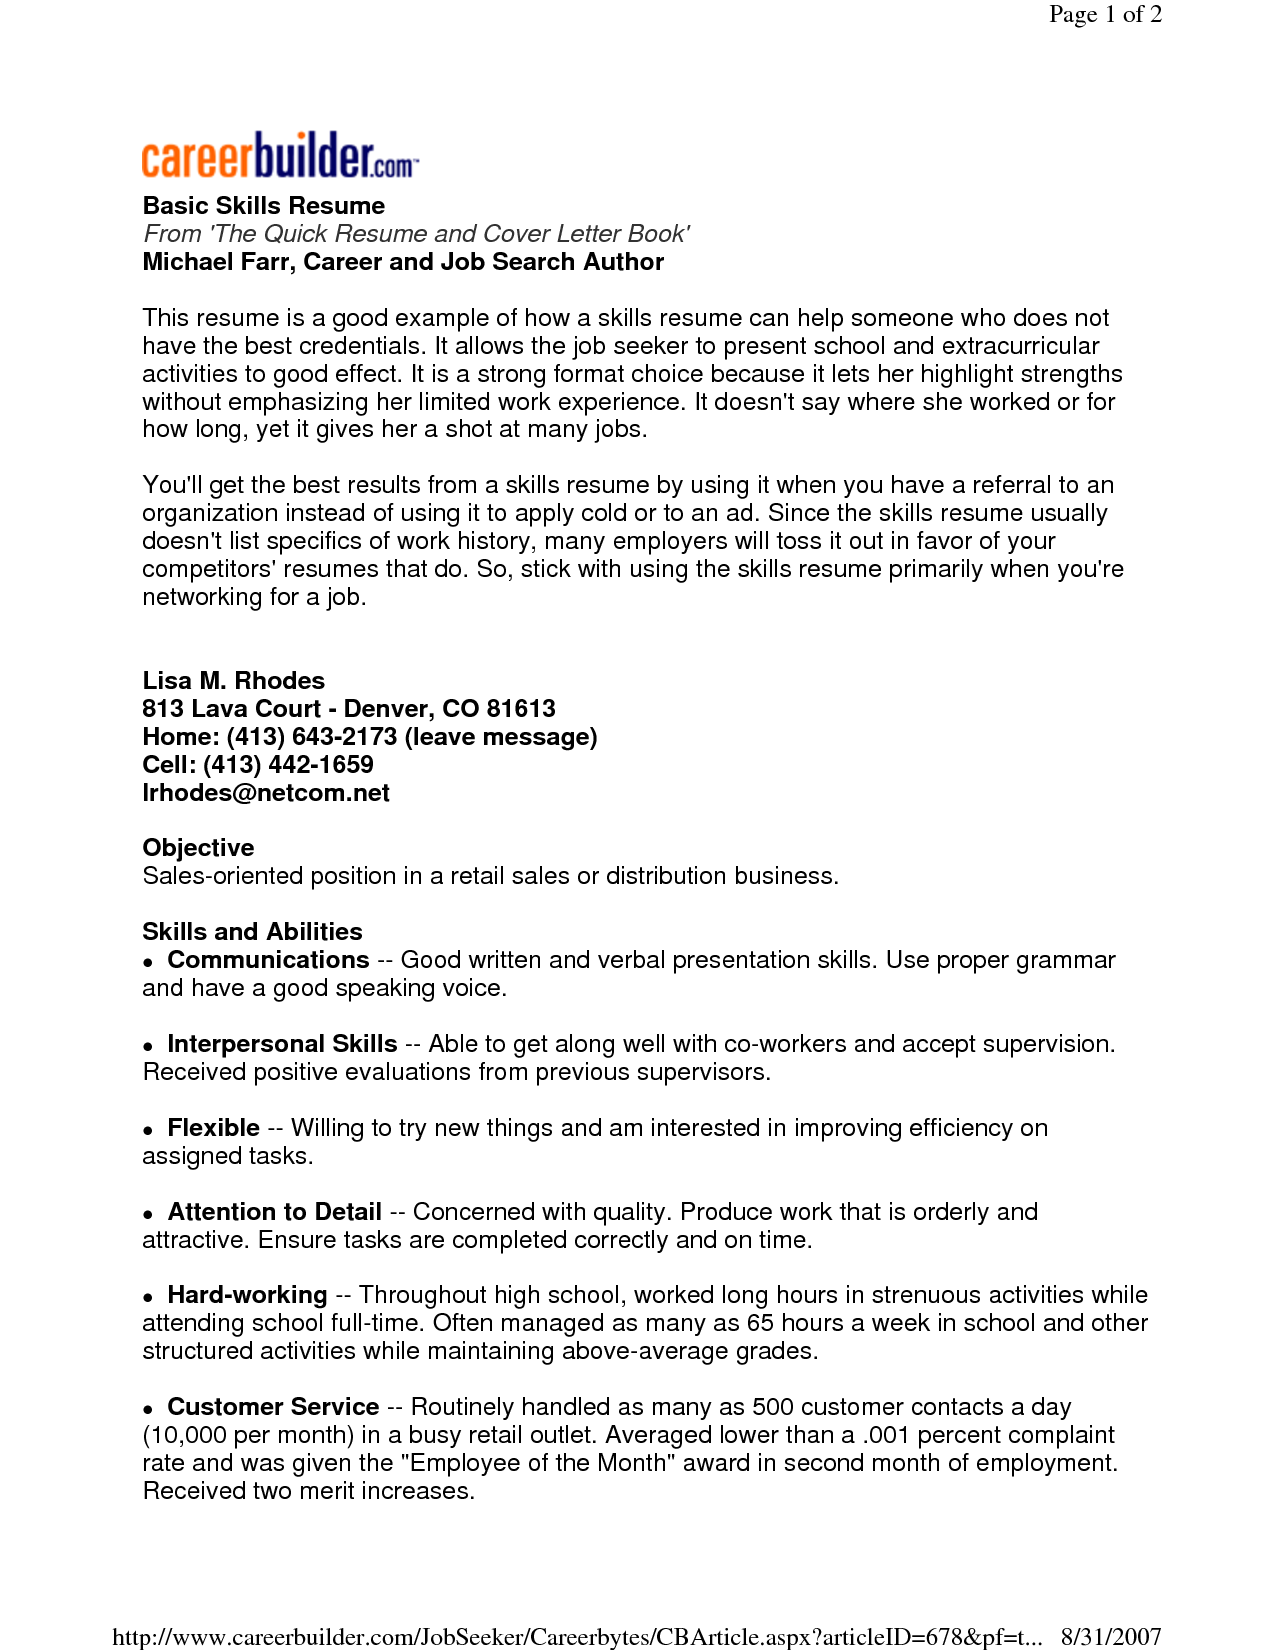 Sample Of Resume Skills And Abilities Resume CV Cover Letter   Examples Of  Skills On A